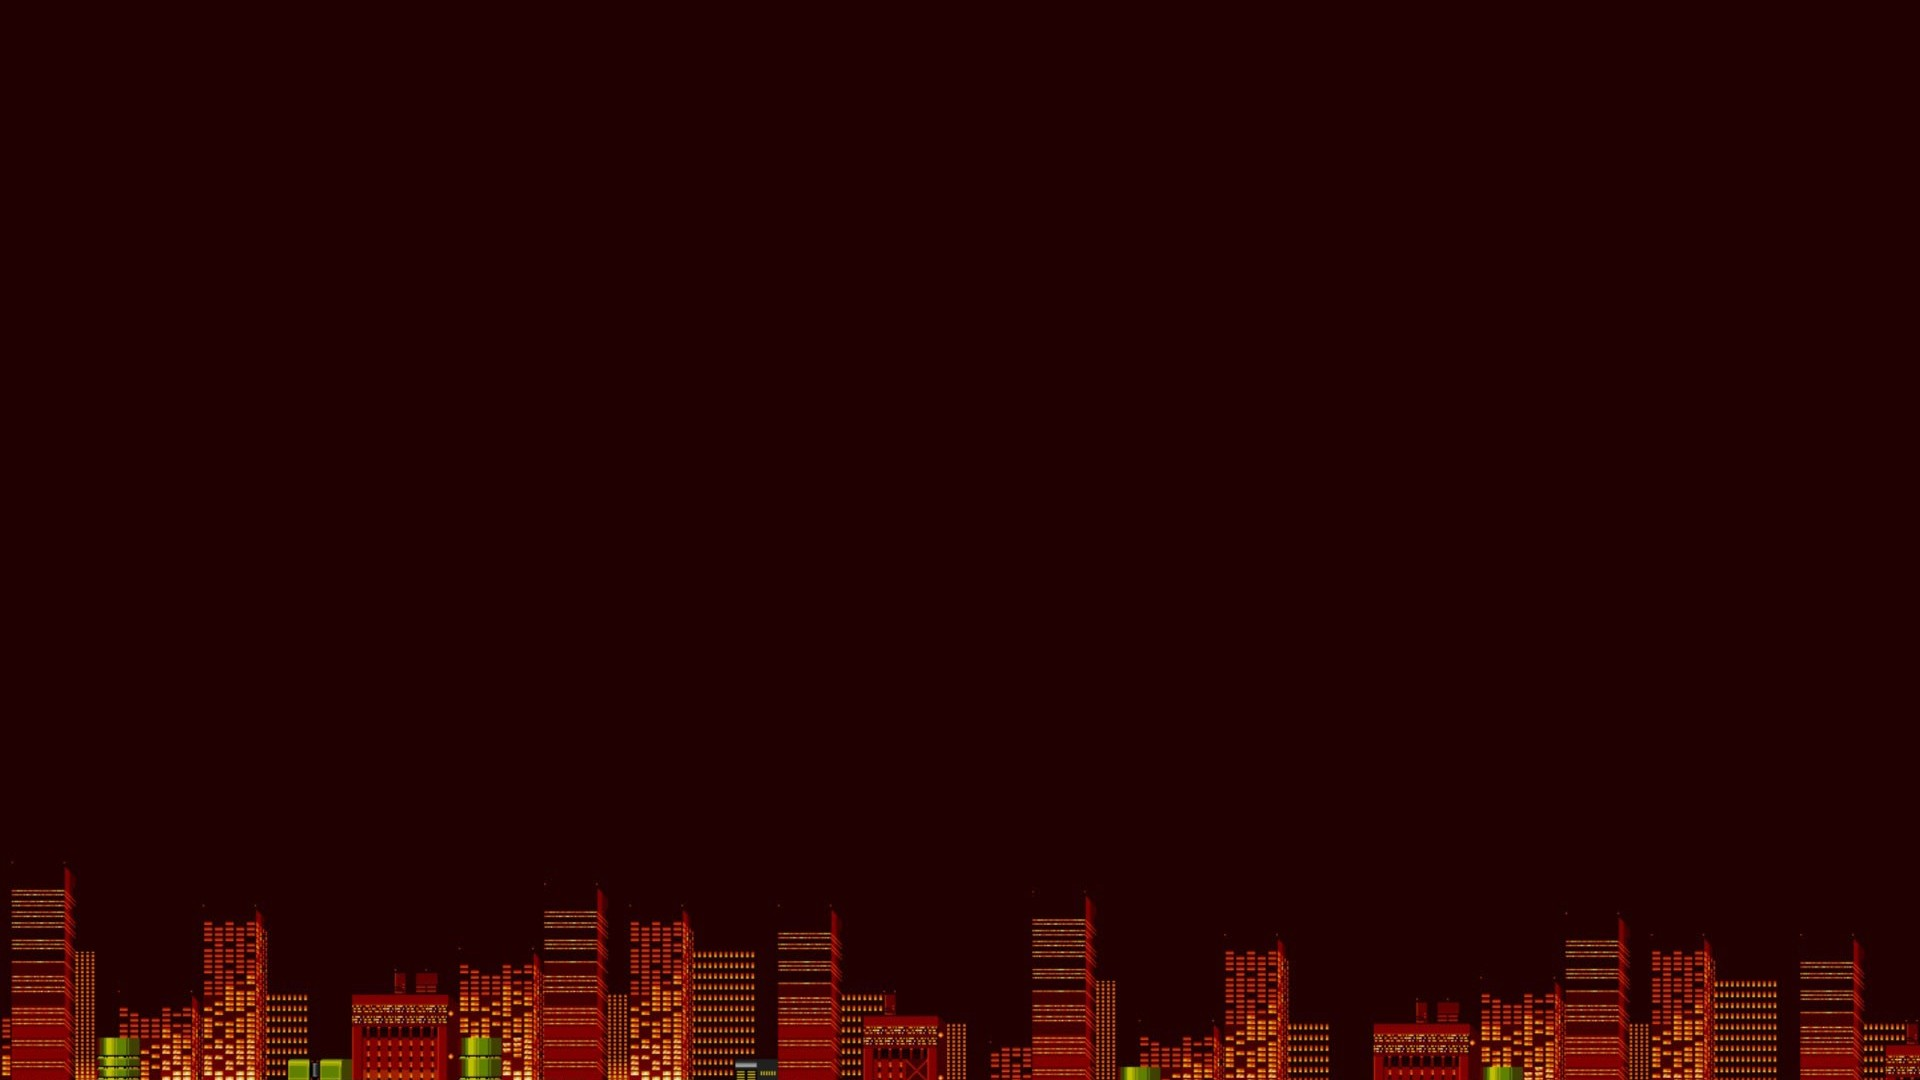 black and red city wallpaper 33 dzbcorg